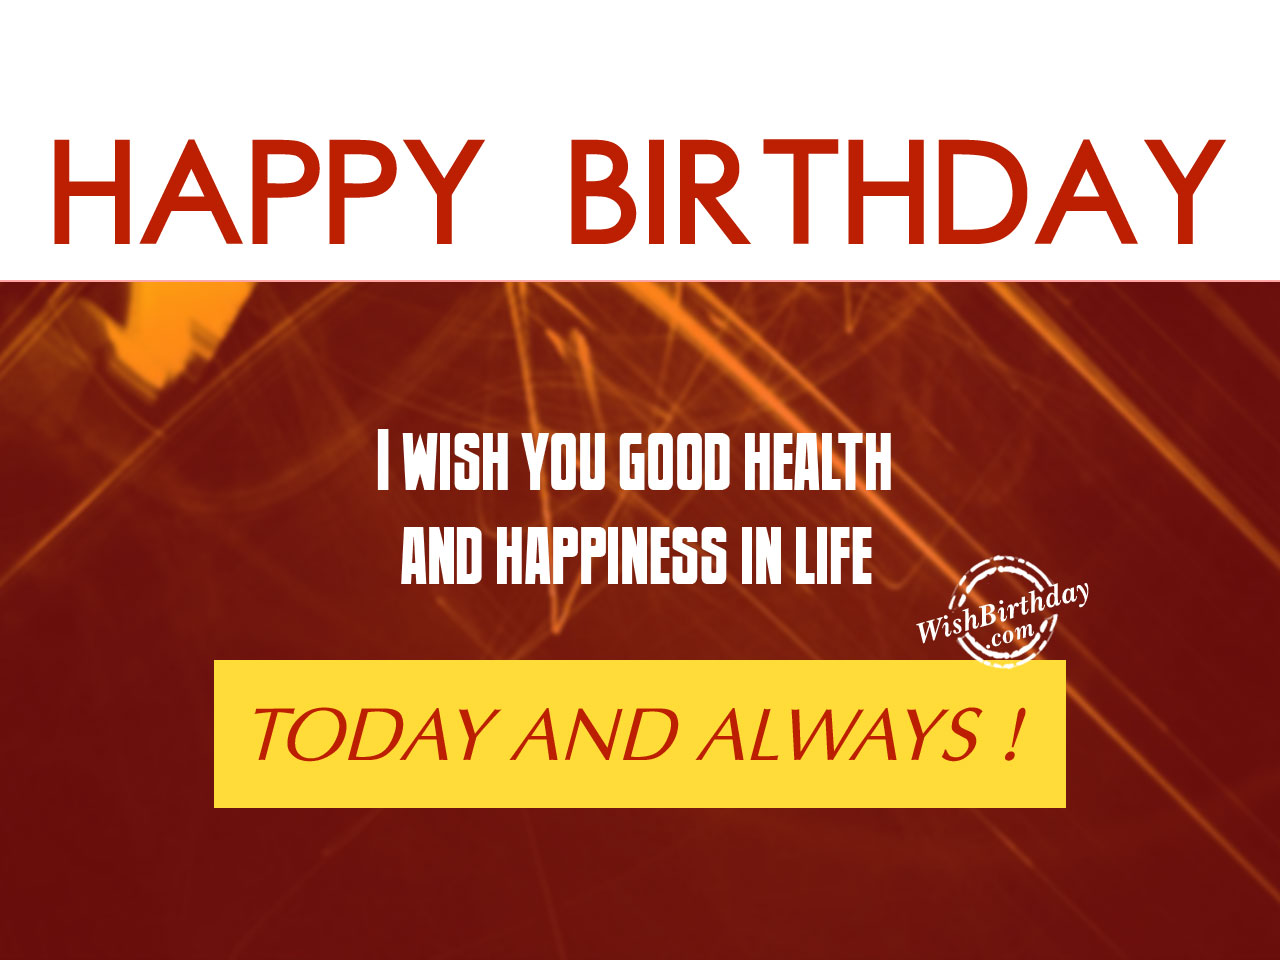 birthday message wishing good health ; I-wish-you-good-healthHappy-Birthday-WB01